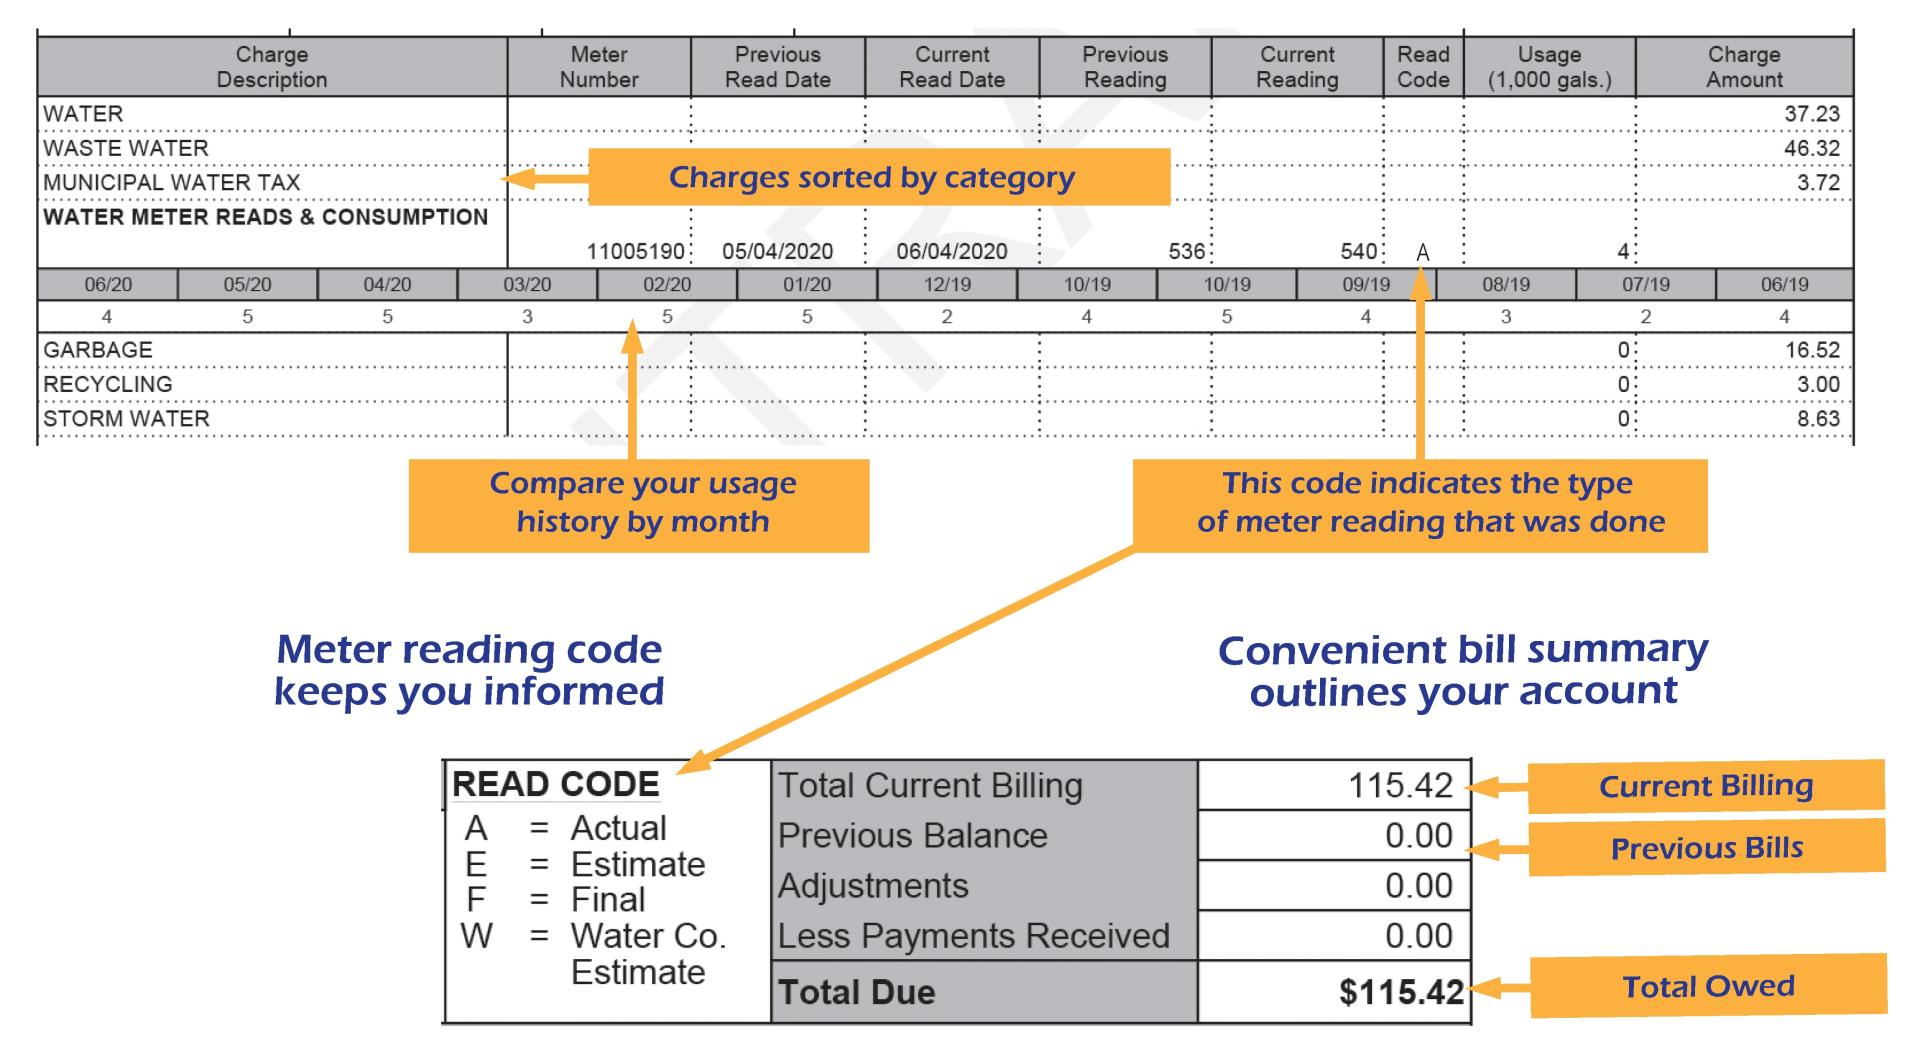 Summary of Sunrise Utility bill features including charges sorted by category, usage history, meter readings, and bill summary